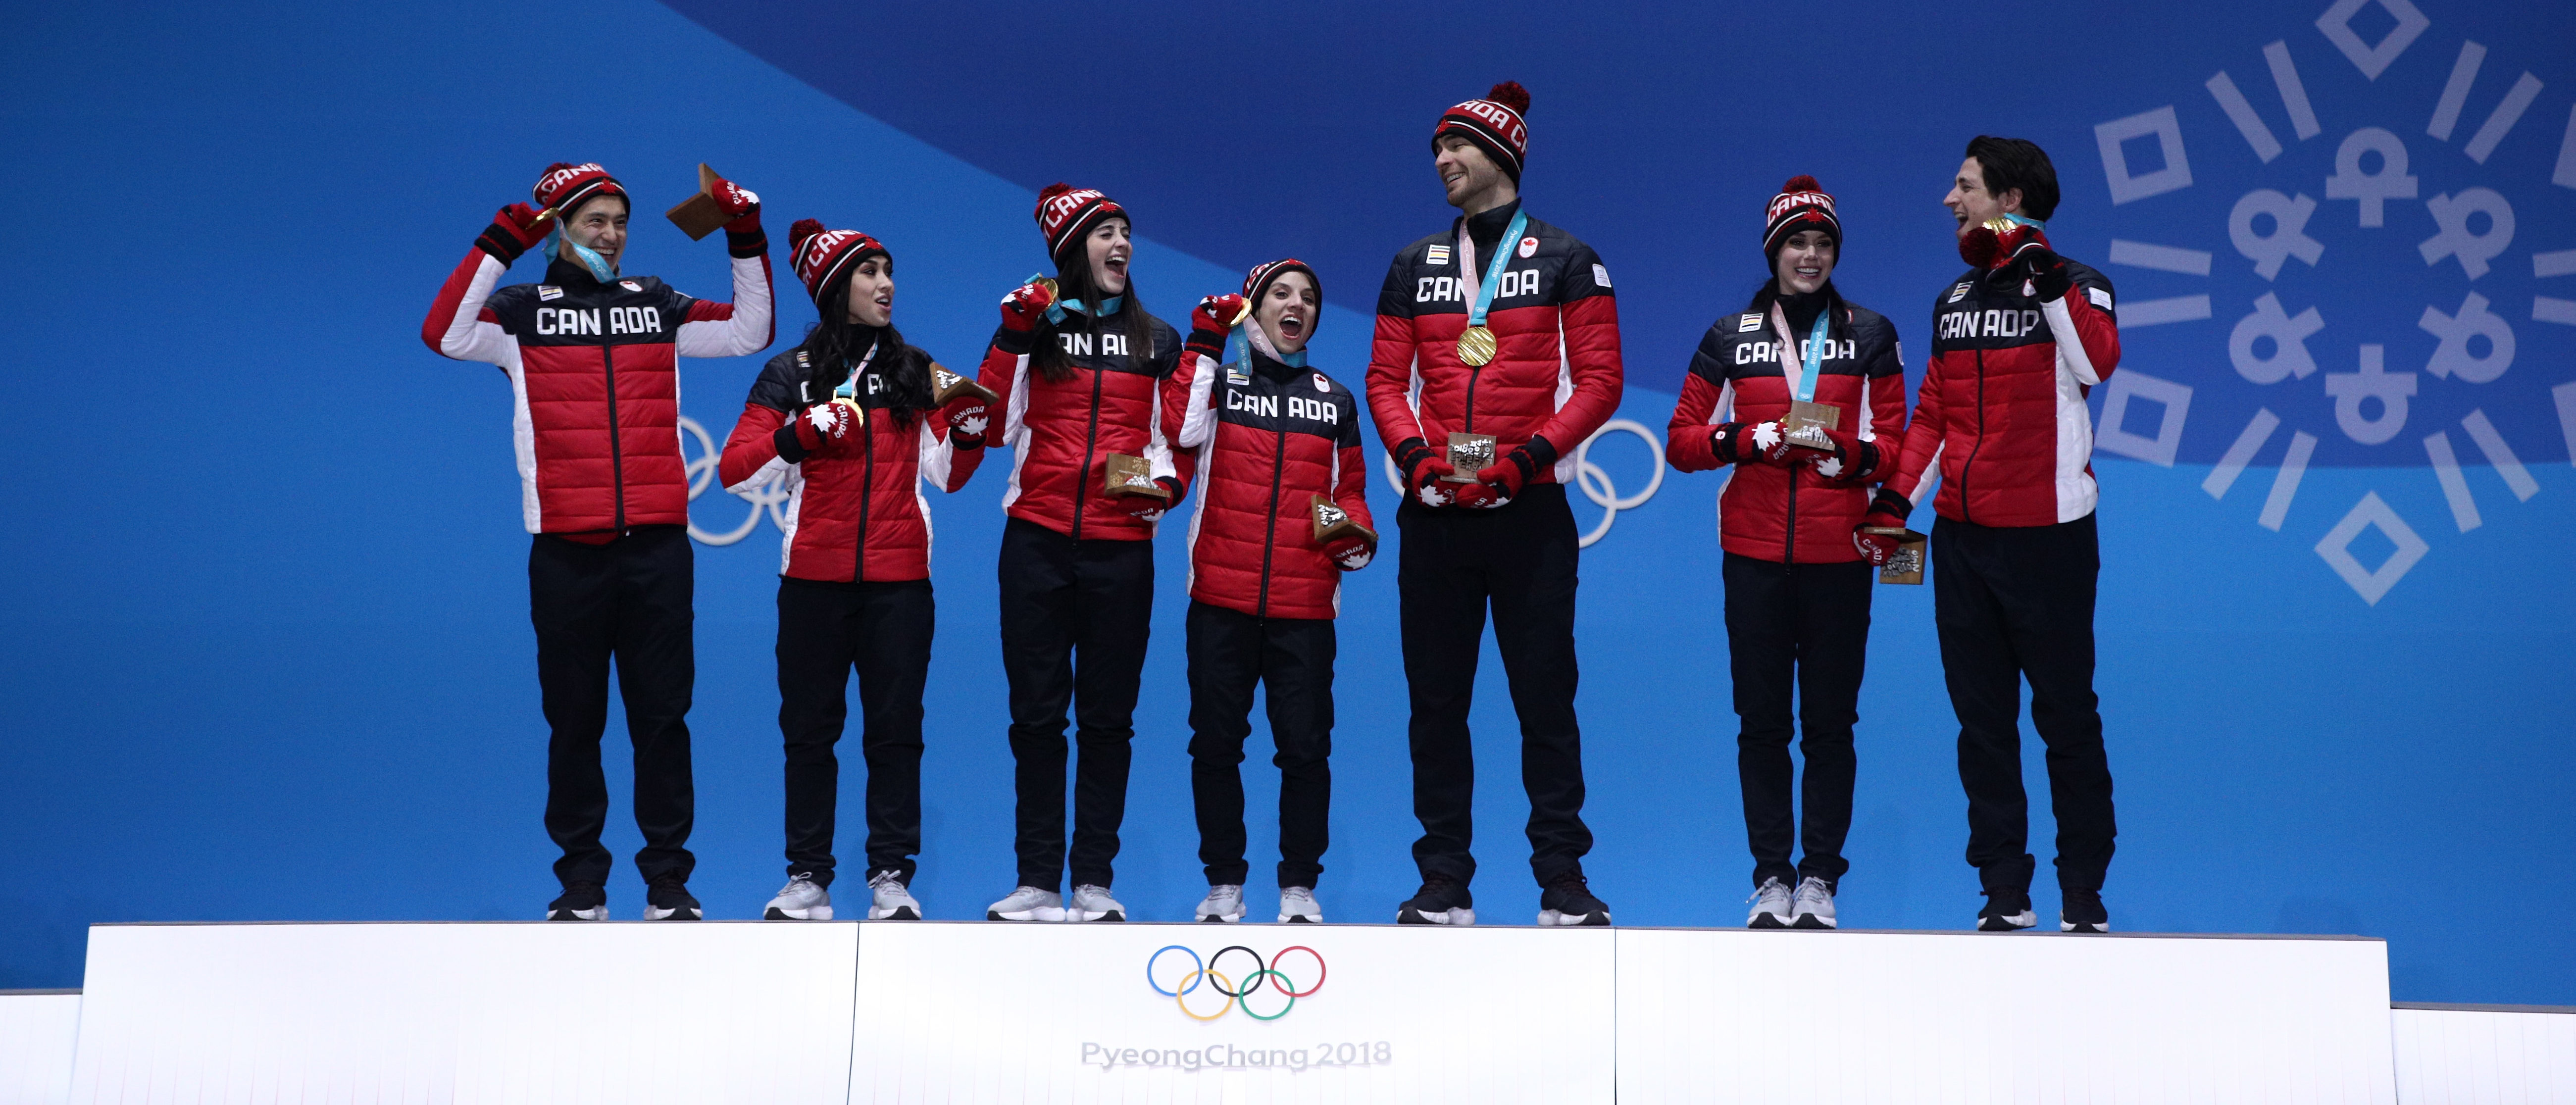 PYEONGCHANG-GUN, SOUTH KOREA - FEBRUARY 12: Gold medalists (L-R) Patrick Chan, Gabrielle Daleman, Kaetlyn Osmond, Meagan Duhamel, Eric Radford, Tessa Virtue and Scott Moir of Team Canada celebrate during the medal ceremony after the Figure Skating Team Event at Medal Plaza on February 12, 2018 in Pyeongchang-gun, South Korea. (Photo by Adam Pretty/Getty Images)